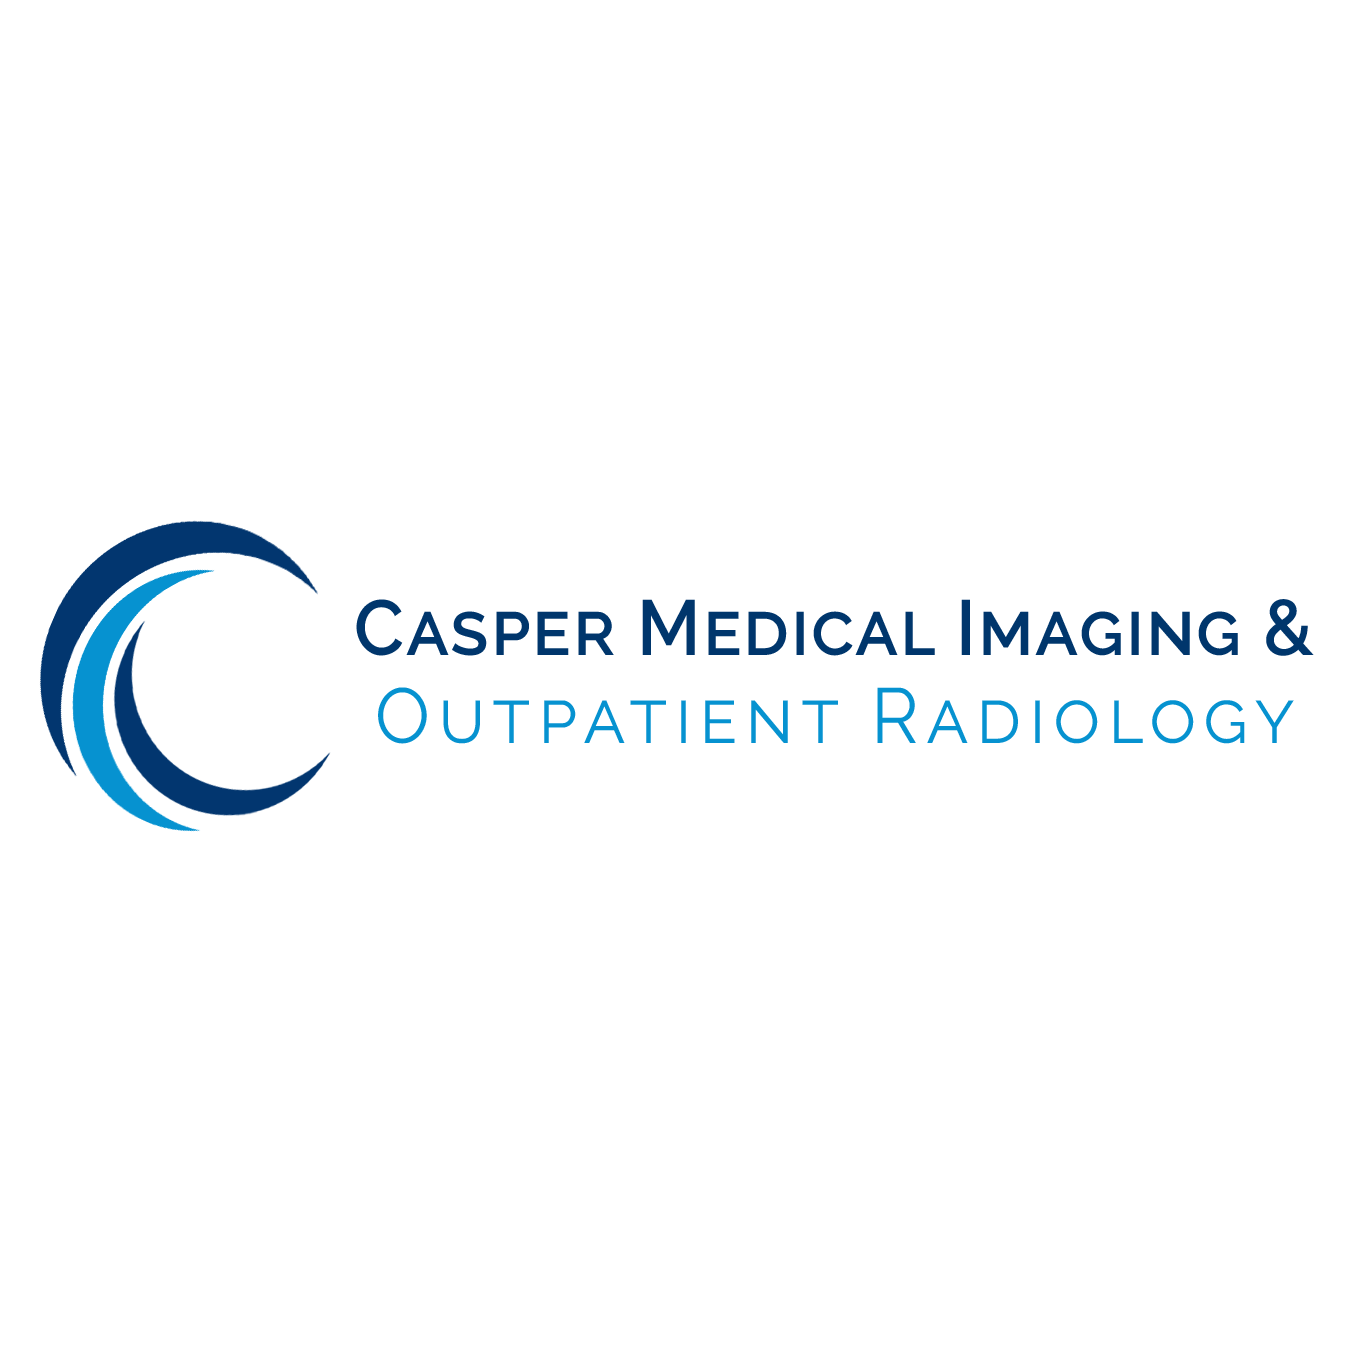 Casper Medical Imaging & Outpatient Radiology image 0